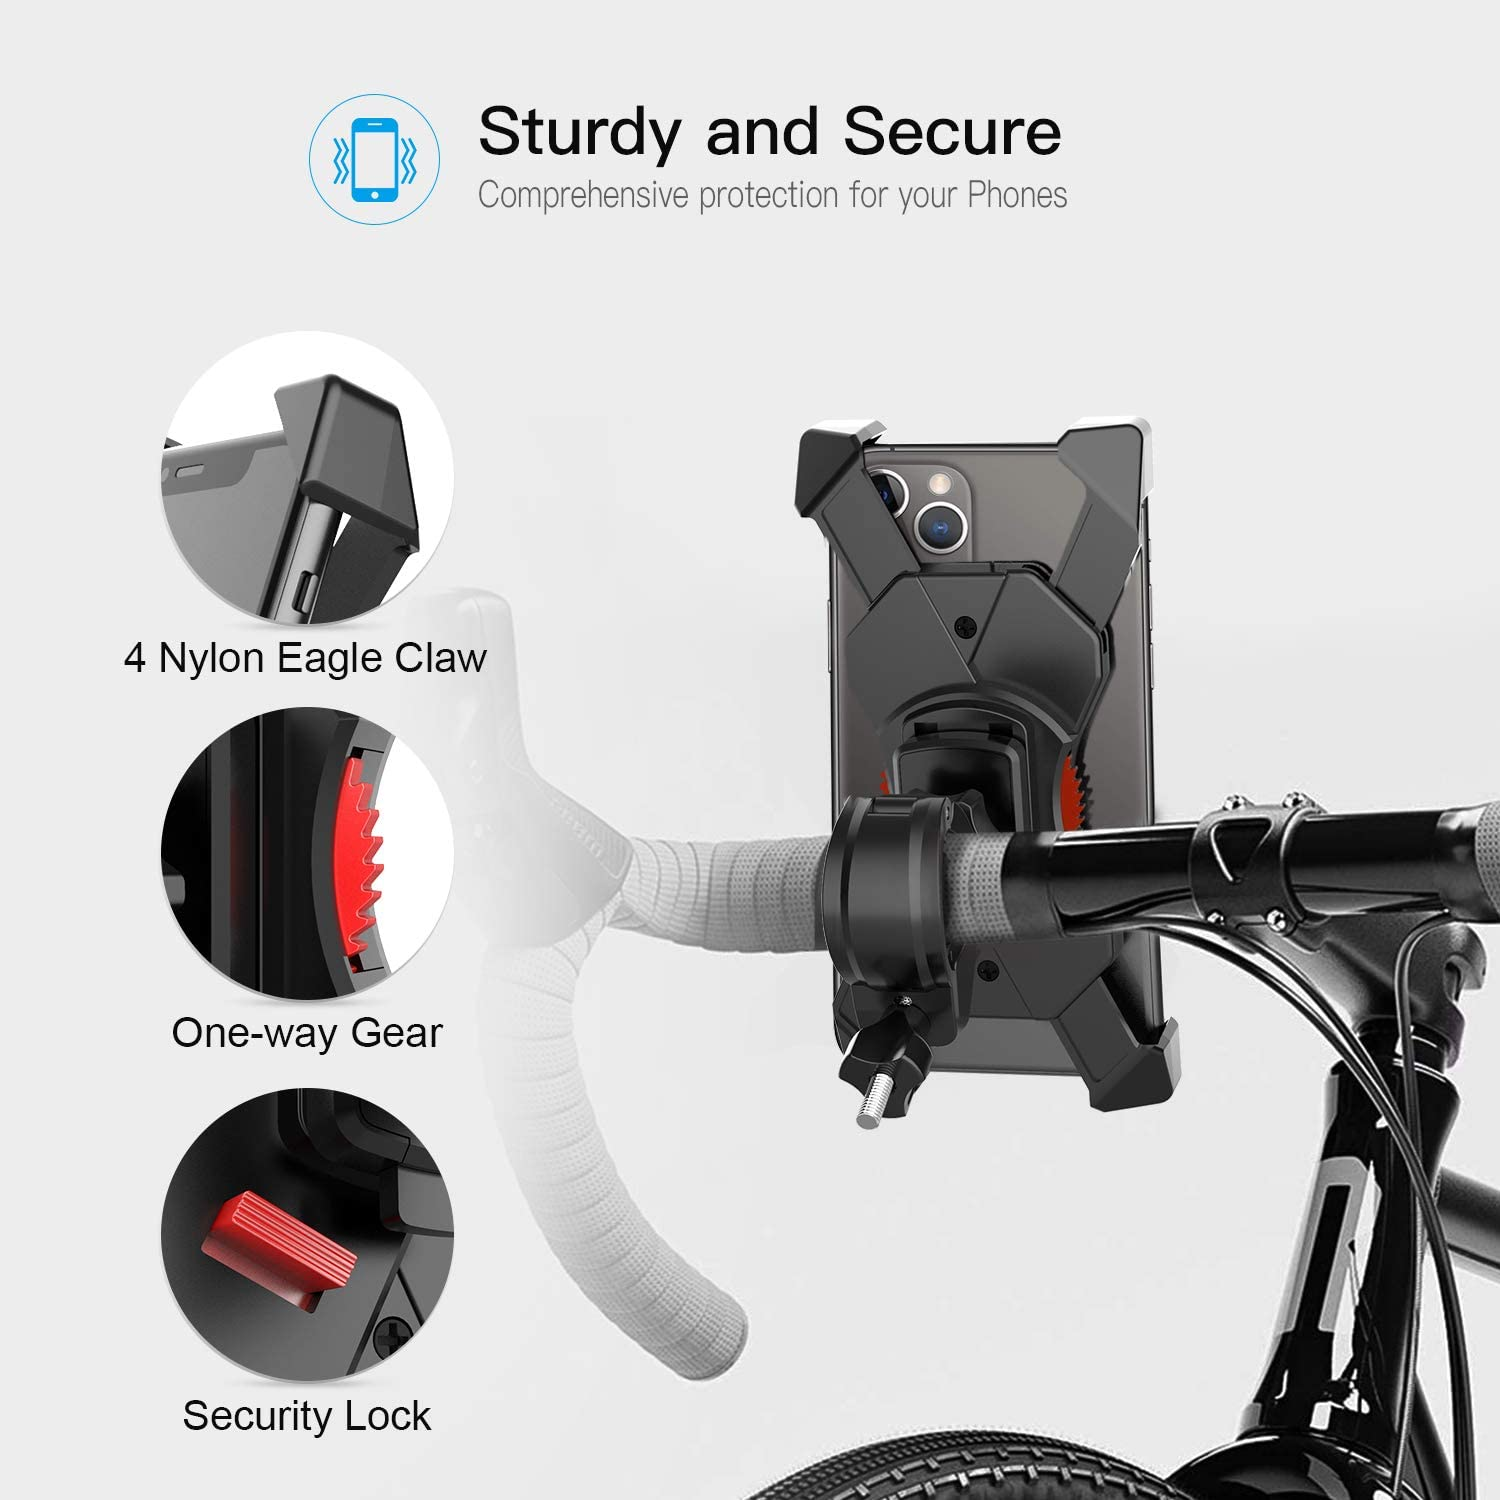 Galaxy S10 S9 S8 360/° Rotation Suit for iPhone Xs Max XR X 8 7 6 Plus ZAVAREA Universal Anti-Shake Bike Phone Mount 4-6.8 inches Android Cell Phones Note 10 9 8 GPS